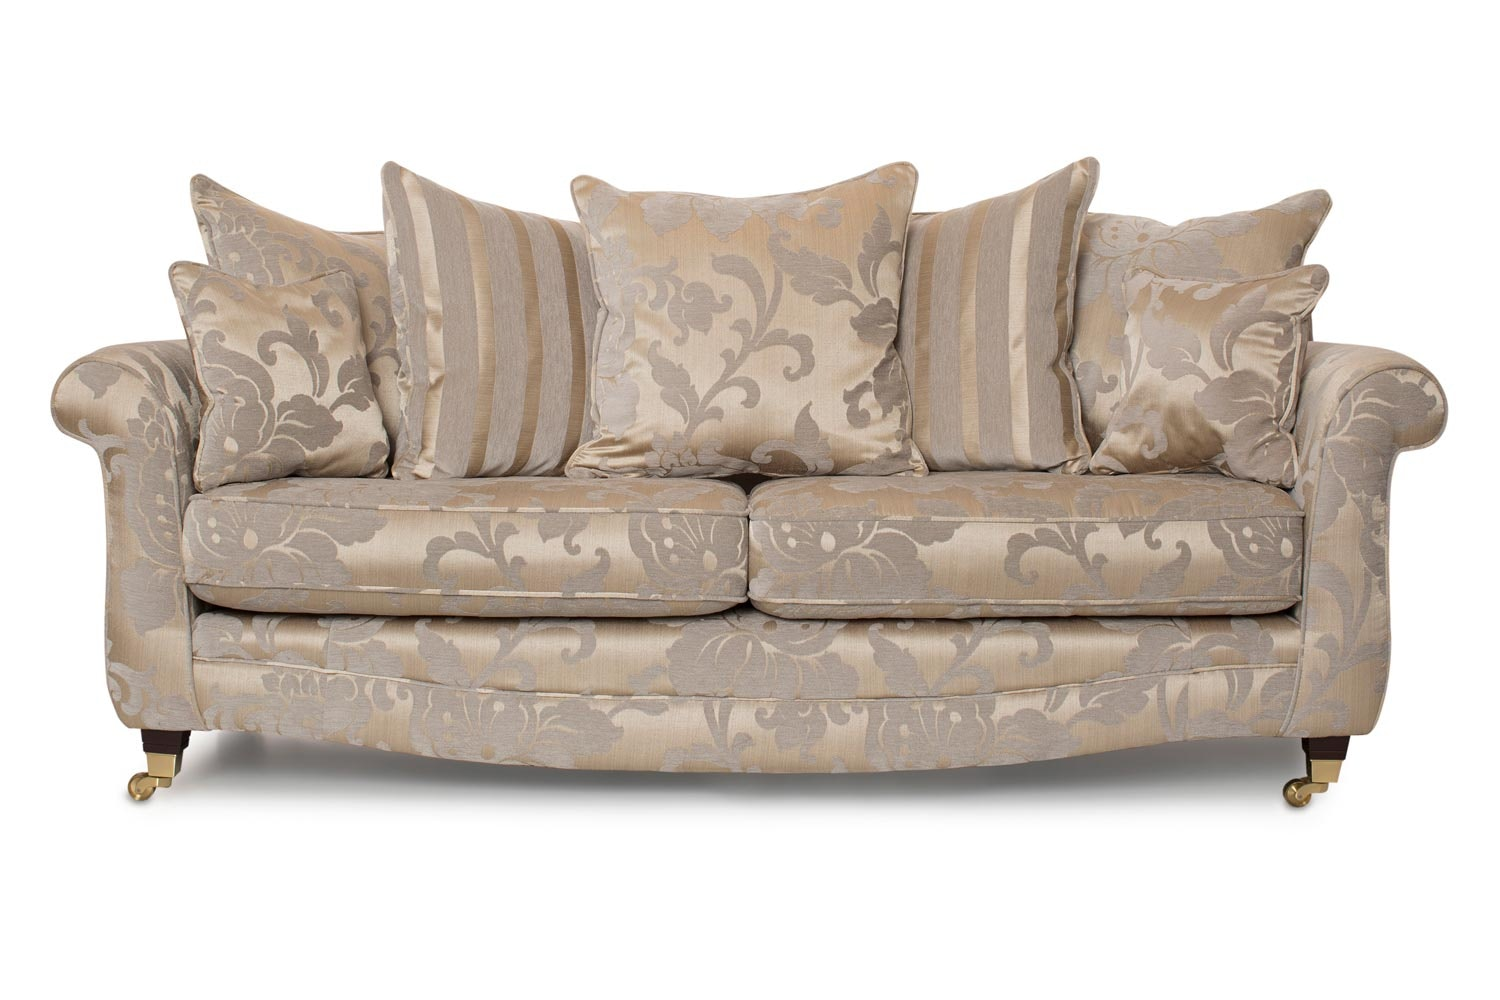 Paris 4 Seater Sofa